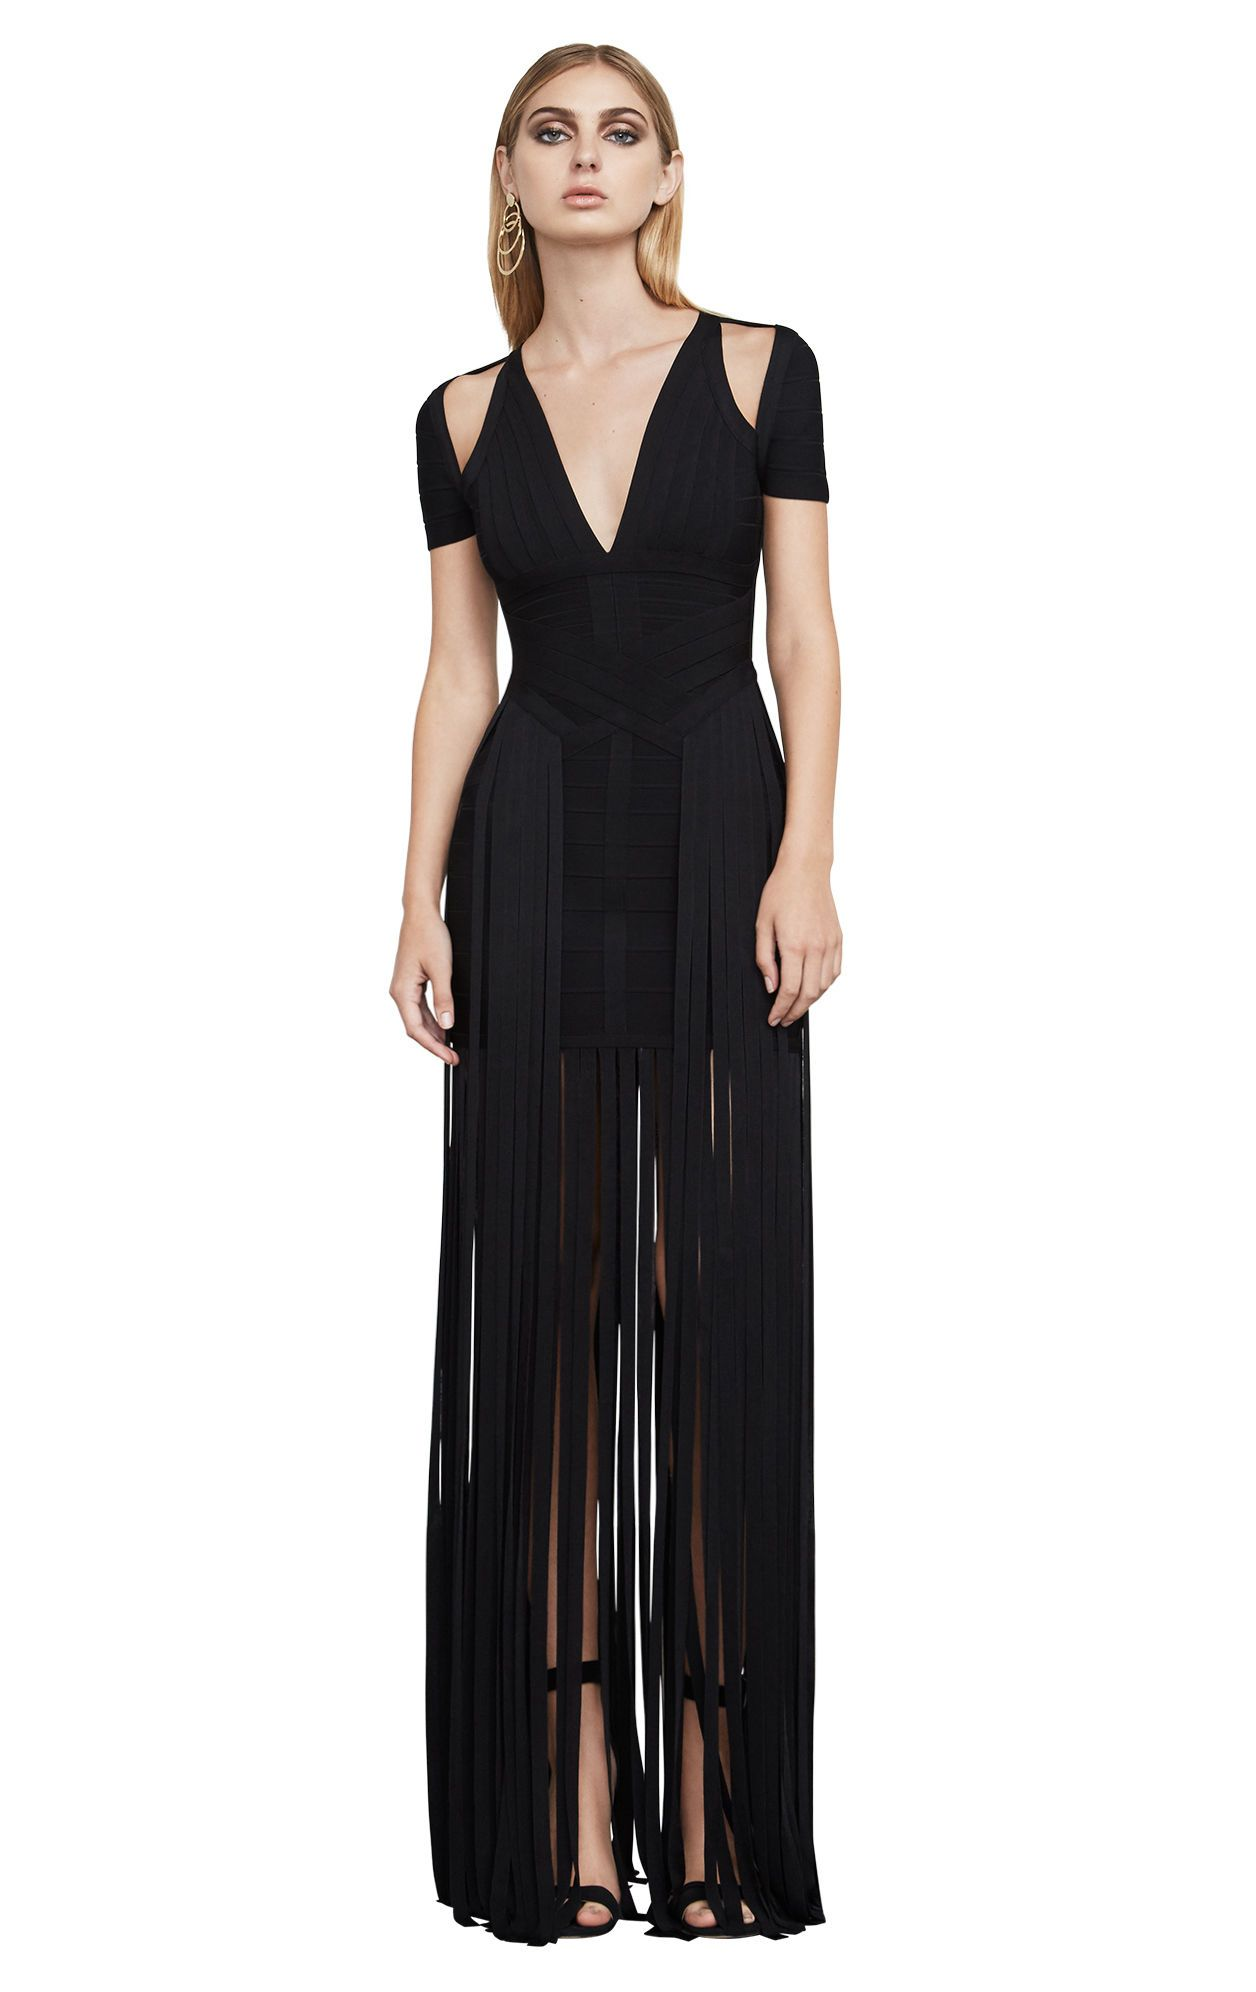 Geena Fringe Bandage Gown | DRESS | Pinterest | Gowns and Fashion